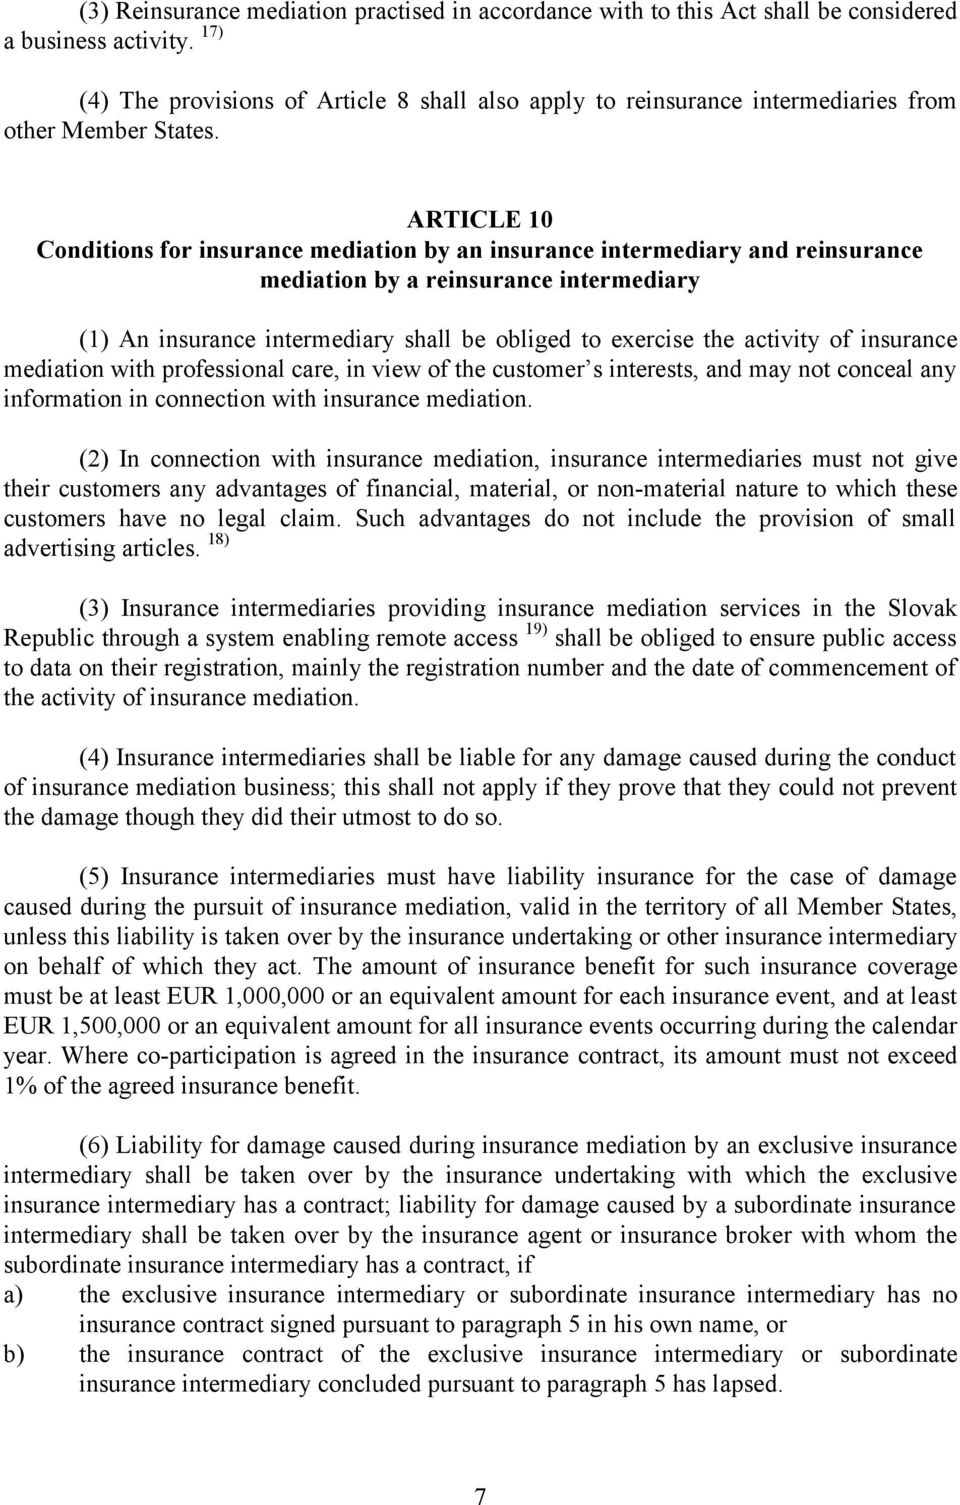 ARTICLE 10 Conditions for insurance mediation by an insurance intermediary and reinsurance mediation by a reinsurance intermediary (1) An insurance intermediary shall be obliged to exercise the